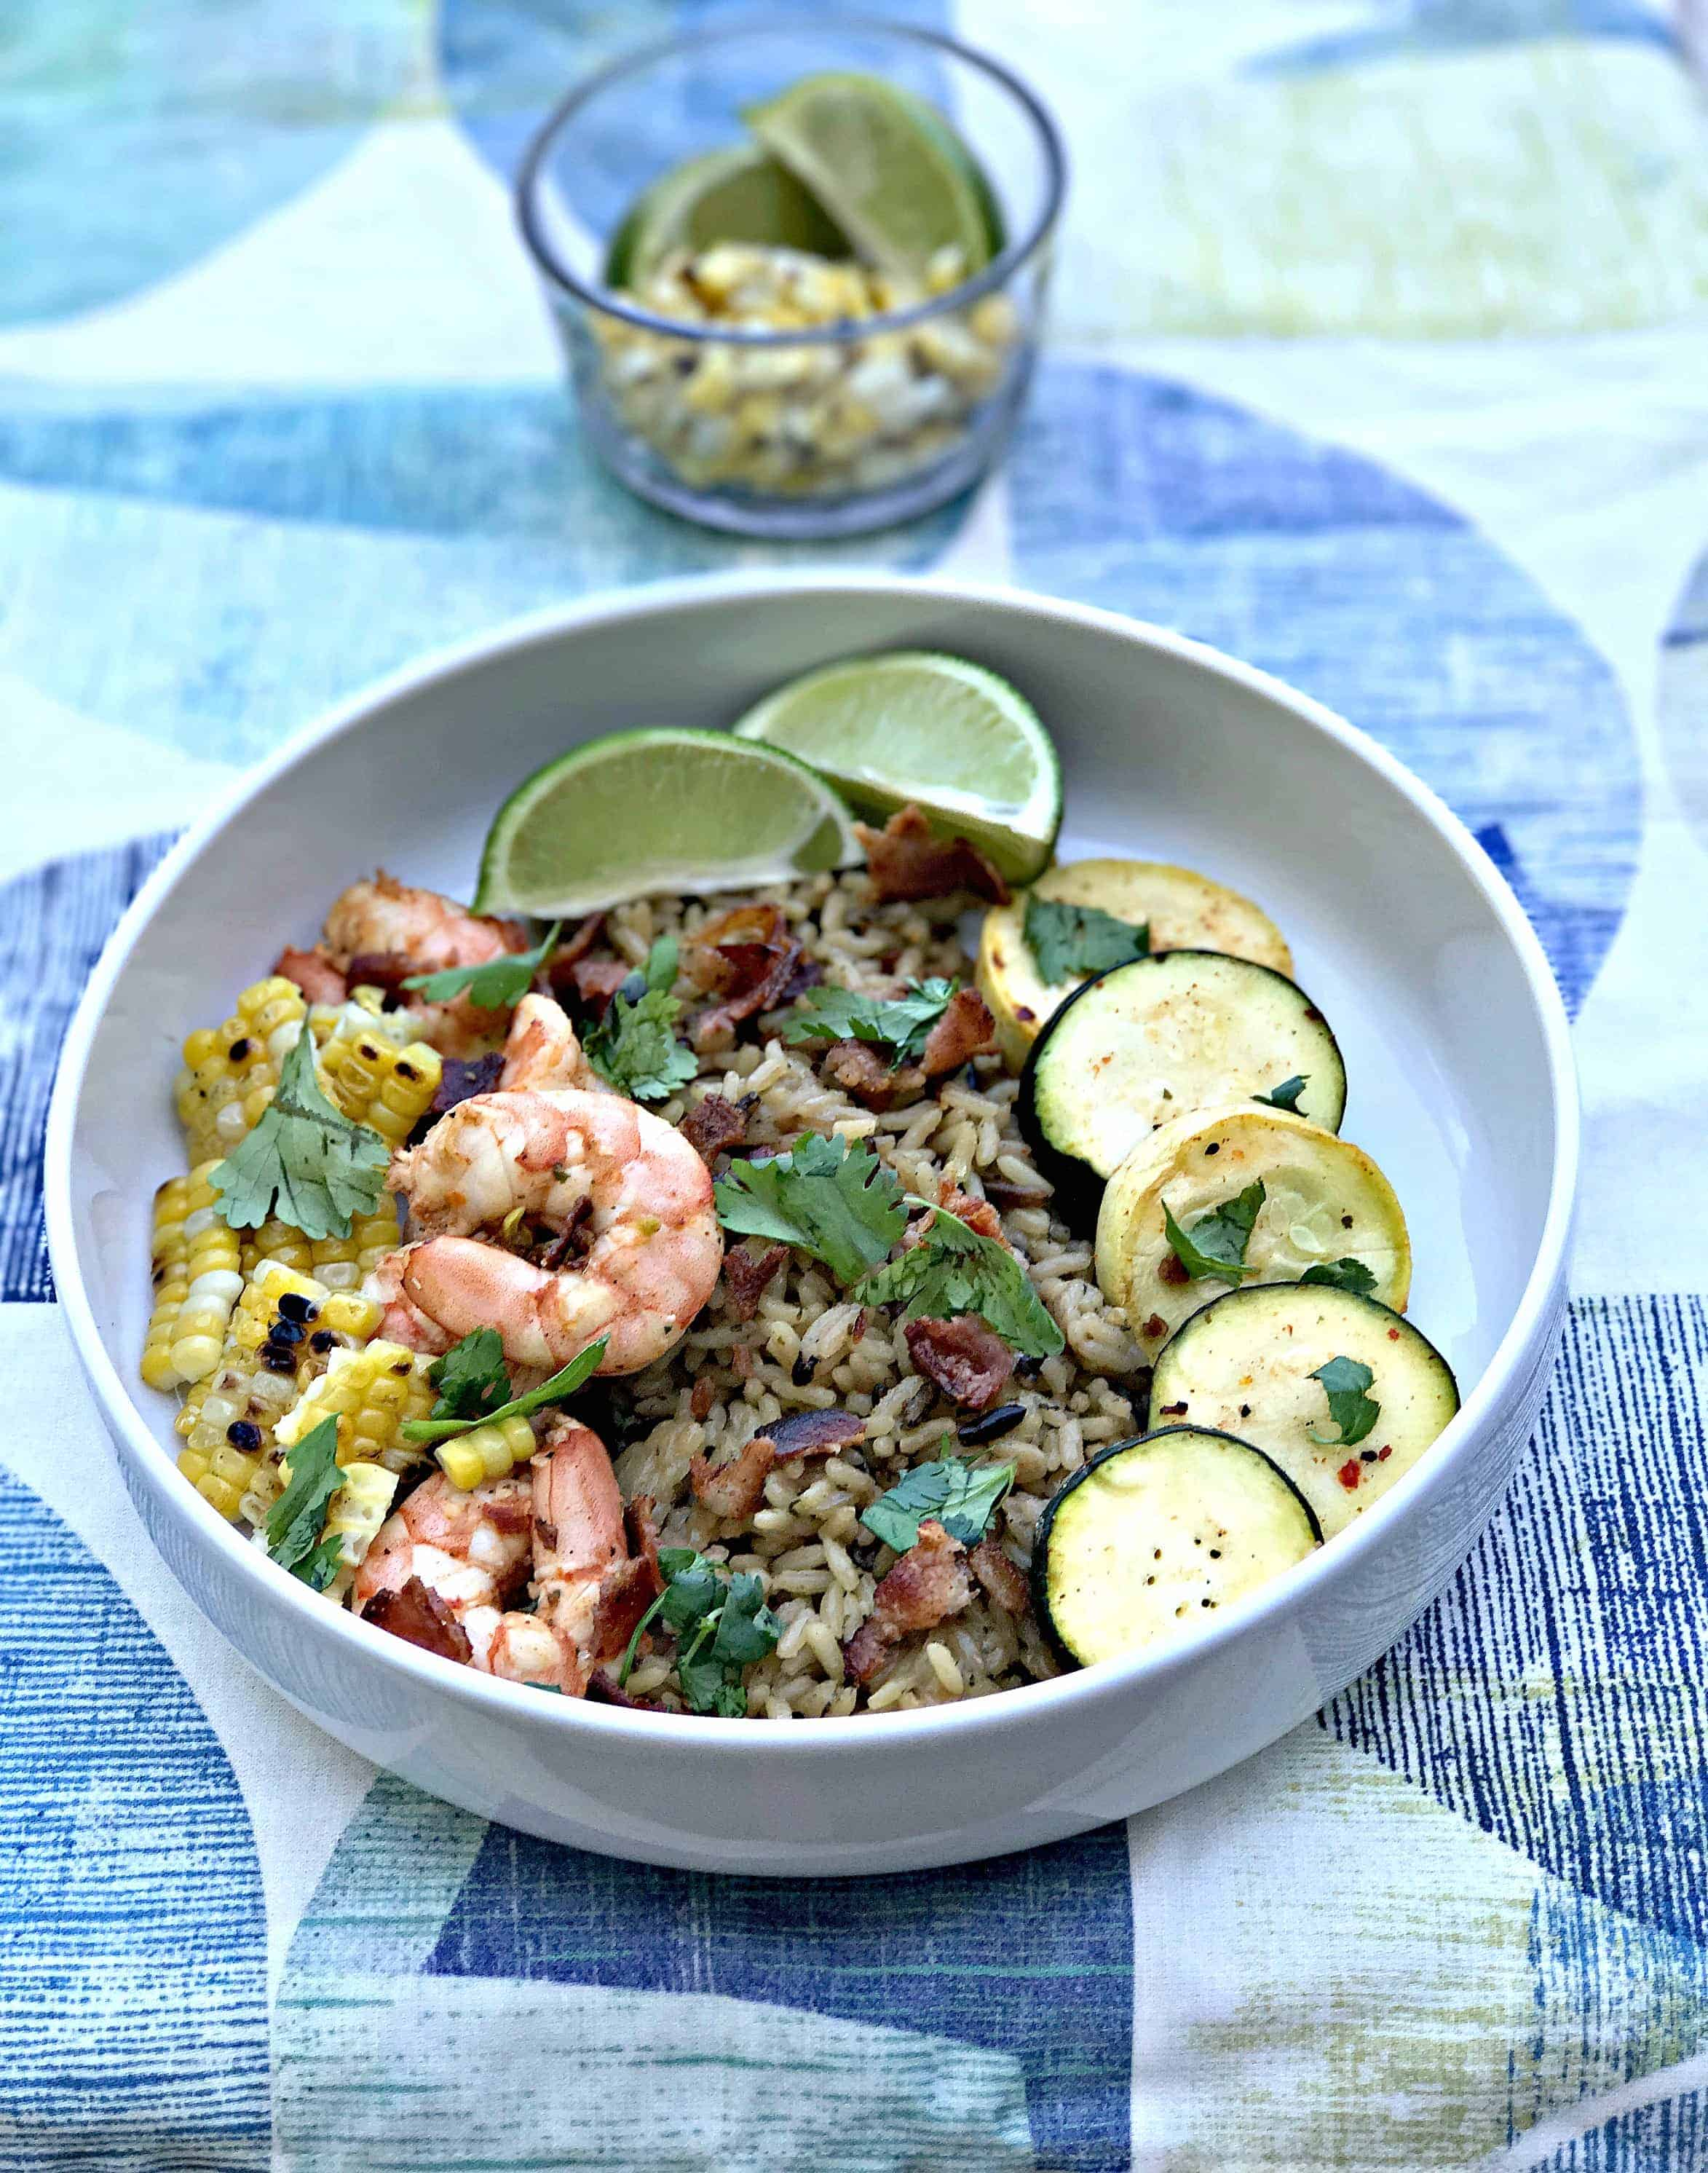 chipotle bacon bowl with grilled shrimp and veggies served in a white bowl